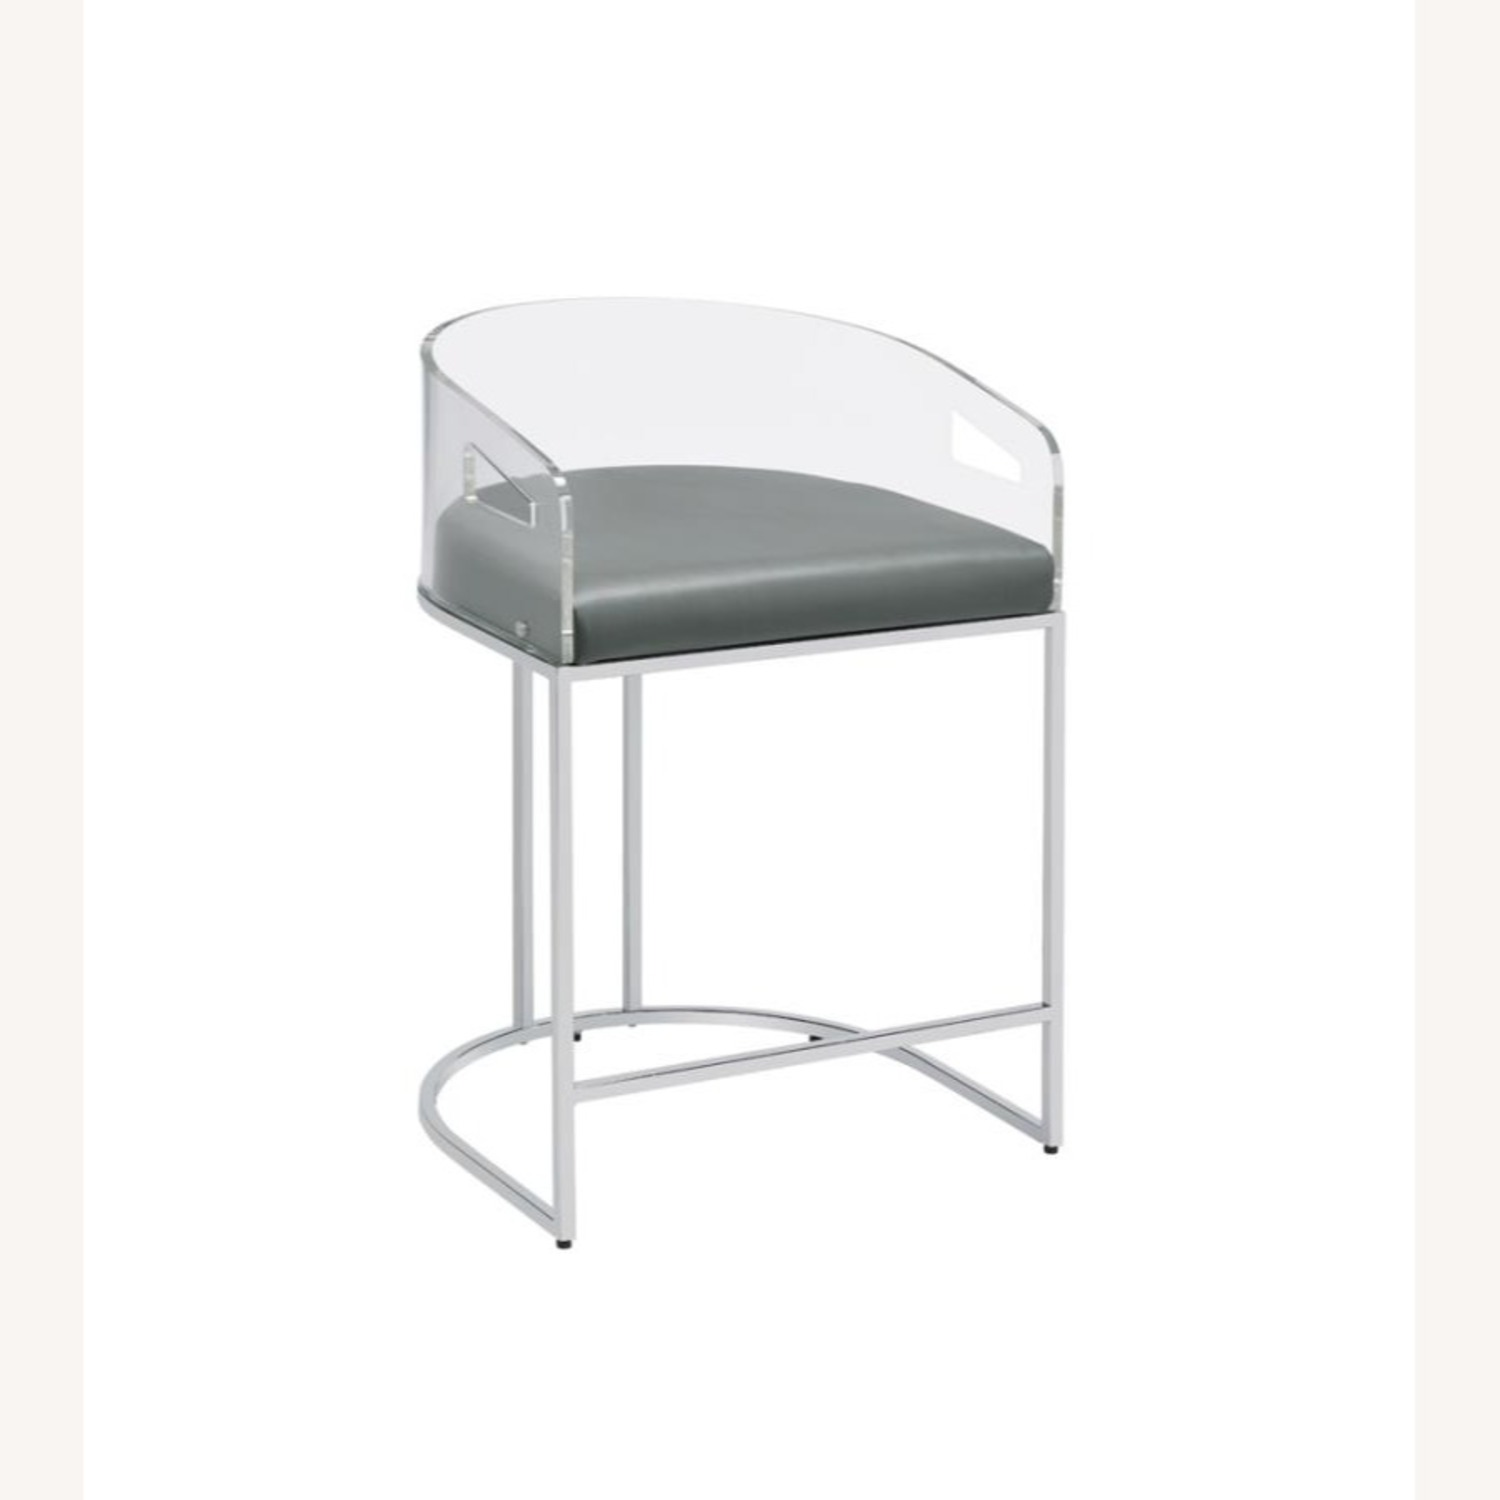 Stool In Grey Leather W/ Clear Acrylic Back - image-0